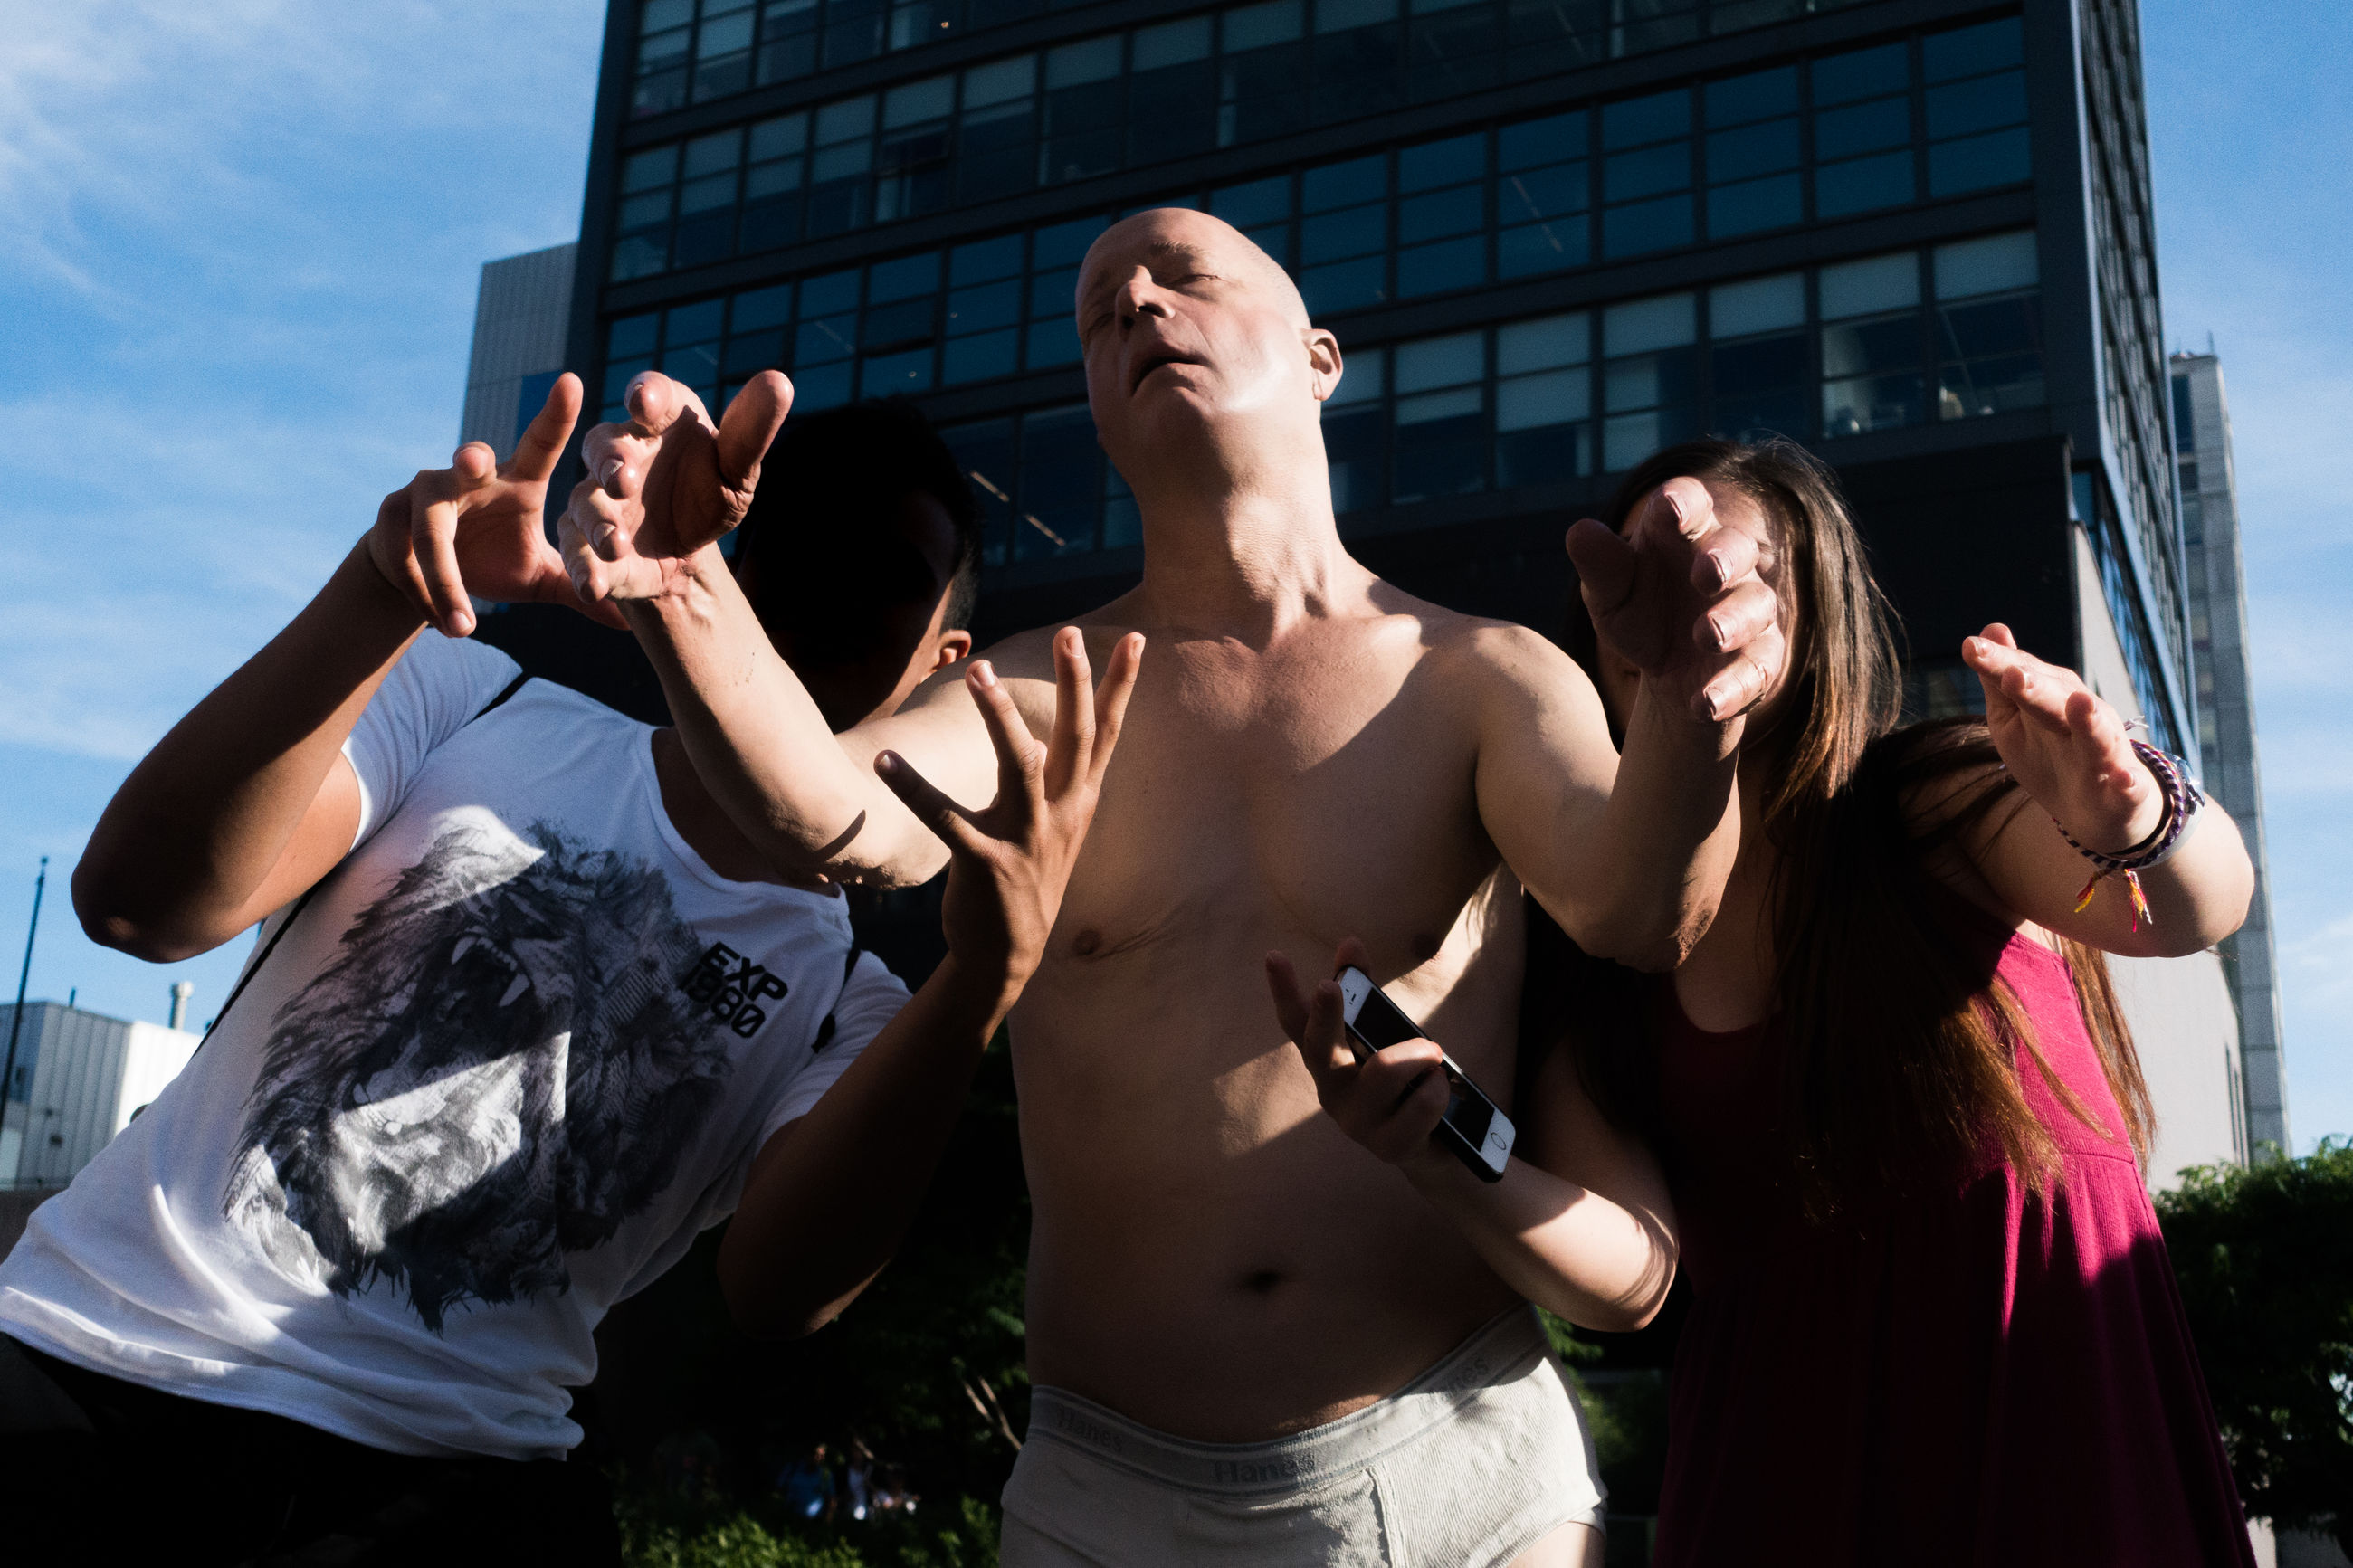 shirtless, arms raised, outdoors, real people, standing, building exterior, day, young women, young adult, togetherness, men, women, architecture, human hand, sky, people